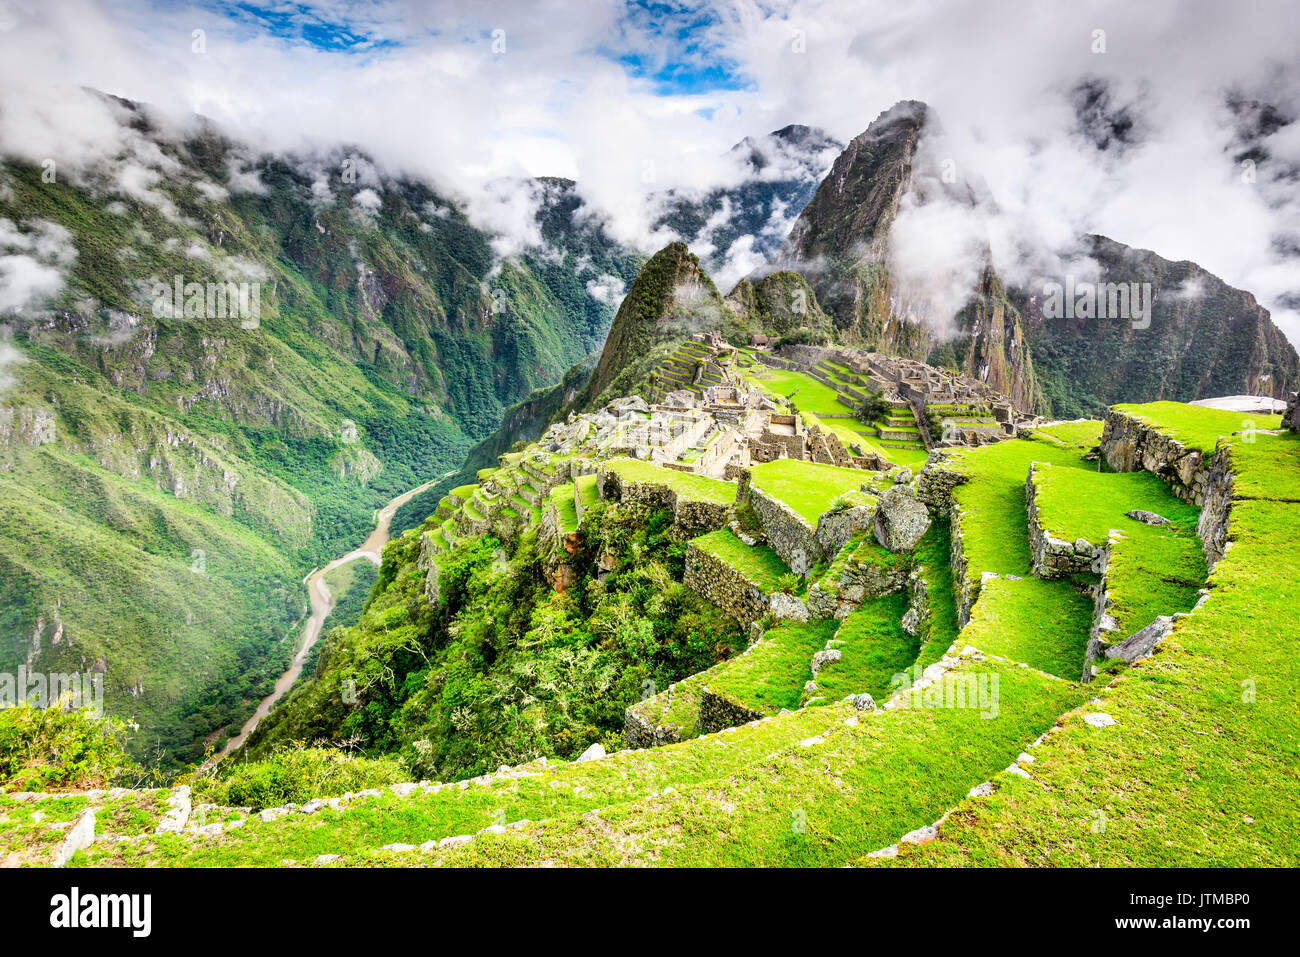 Machu Picchu, Peru - Ruins of Inca Empire city and Huaynapicchu Mountain, Sacred Valley, Cusco. Amazing place of South America. - Stock Image